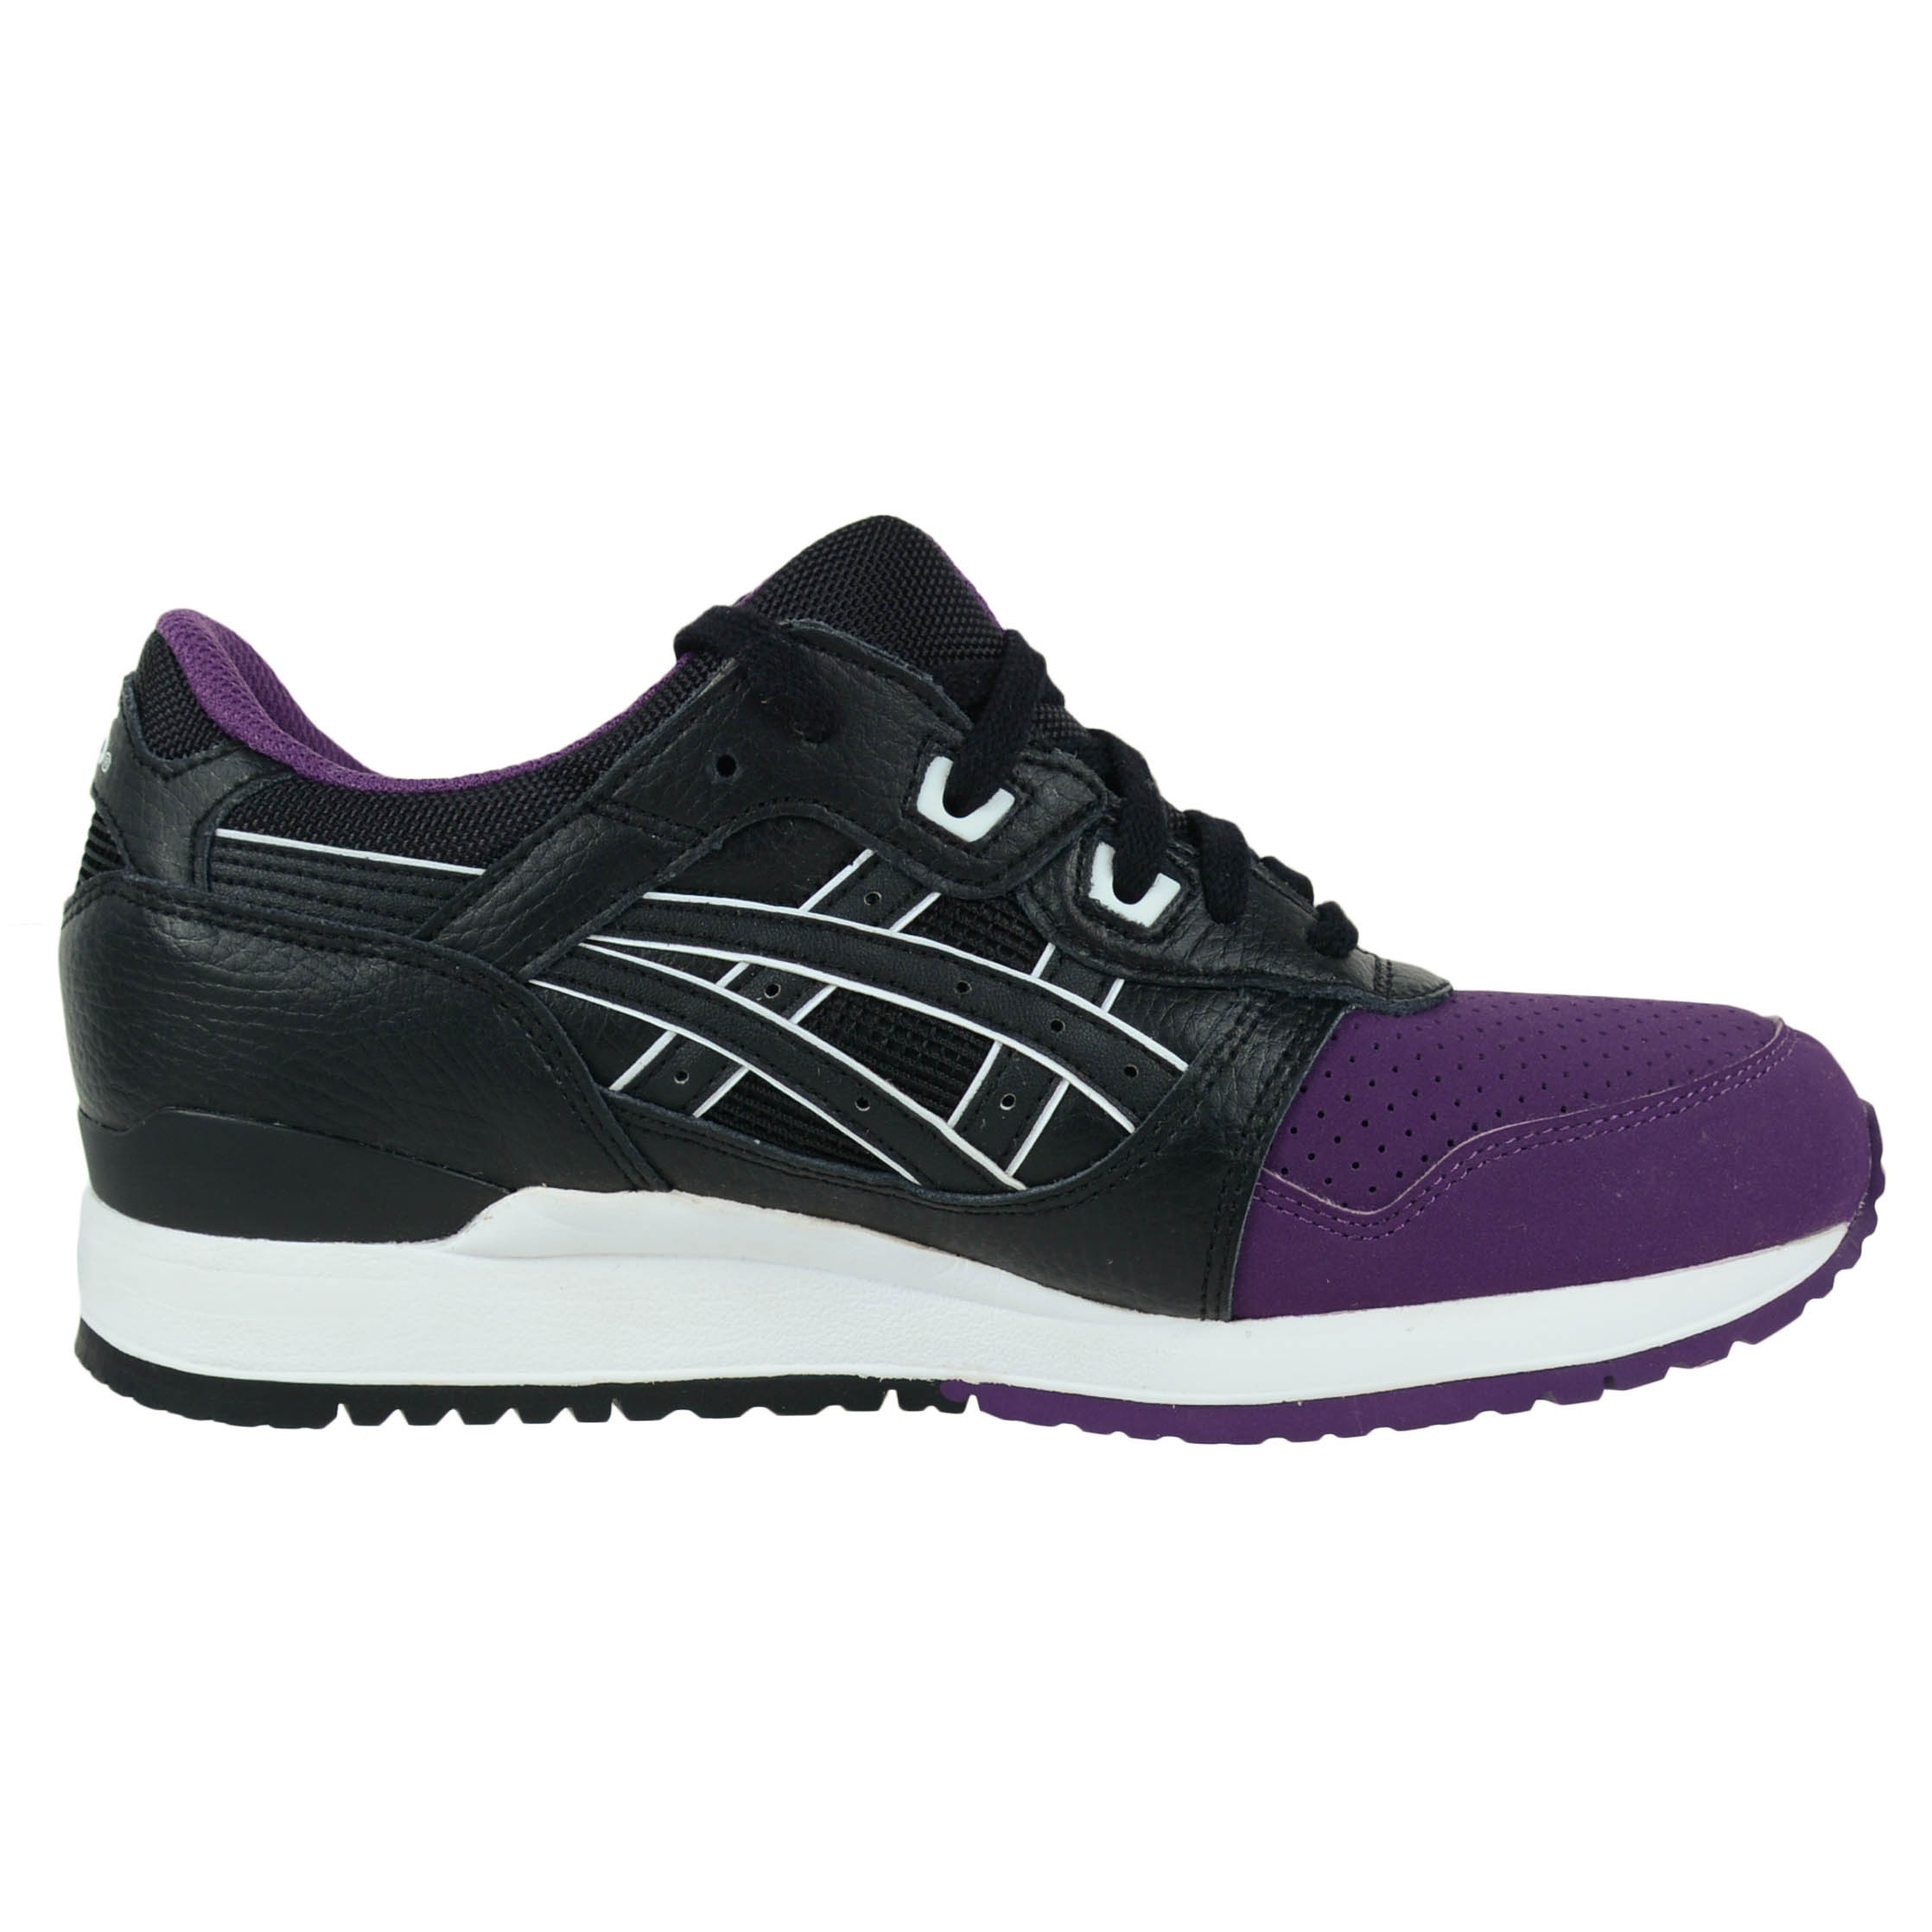 ASICS GEL-LYTE III RUNNING SHOES 50/50 PACK PURPLE BLACK H5V0L 3390